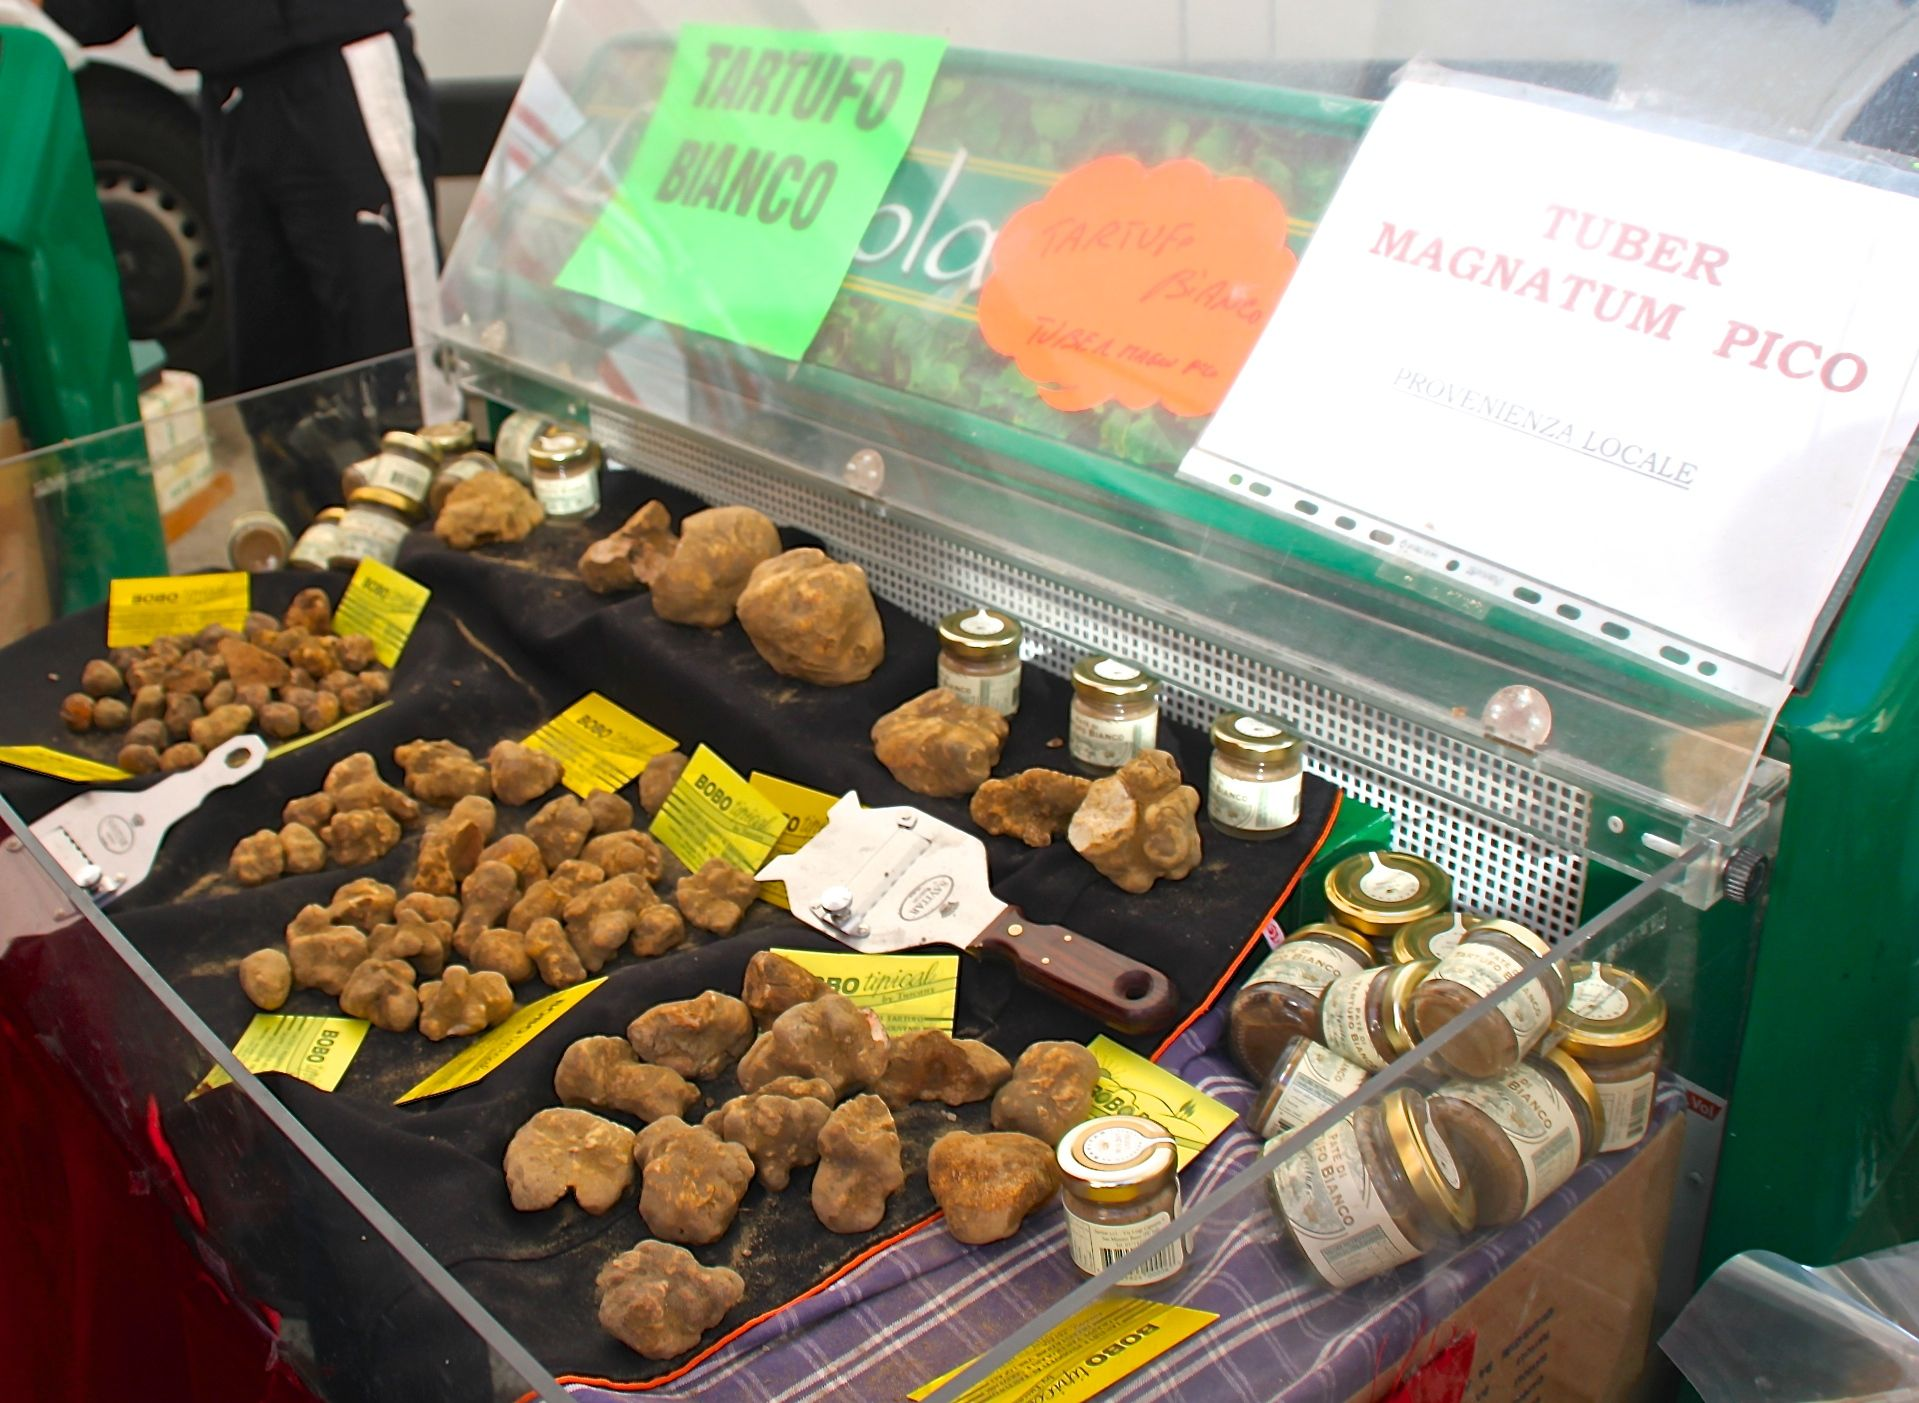 White truffles come in all shapes and sizes at the San Miniato truffle festival